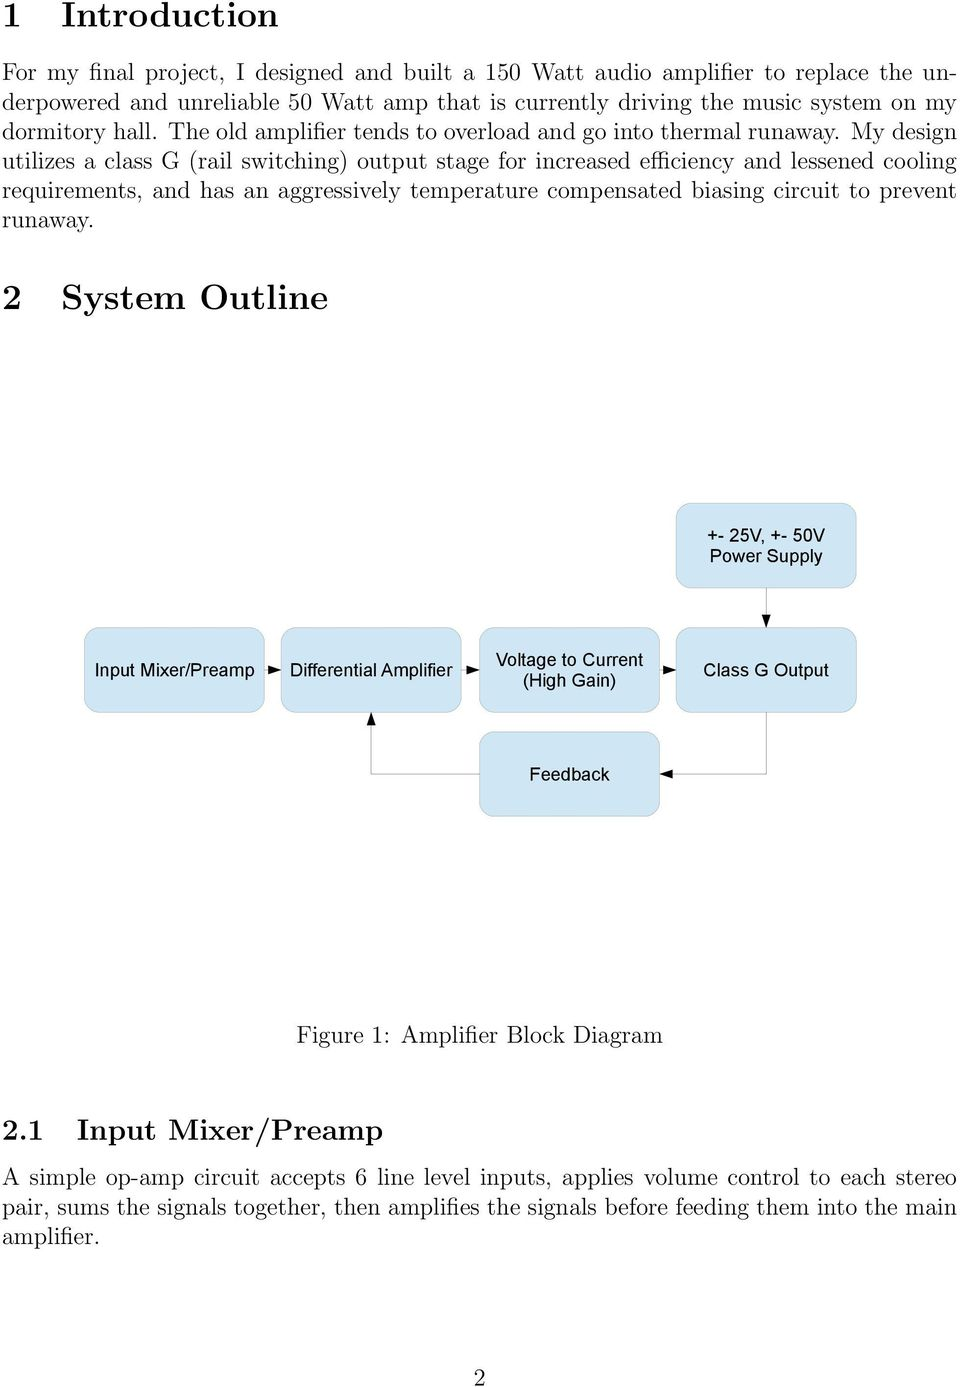 6101 Final Project Report Class G Audio Amplifier Pdf Block Diagram My Design Utilizes A Rail Switching Output Stage For Increased Efficiency And